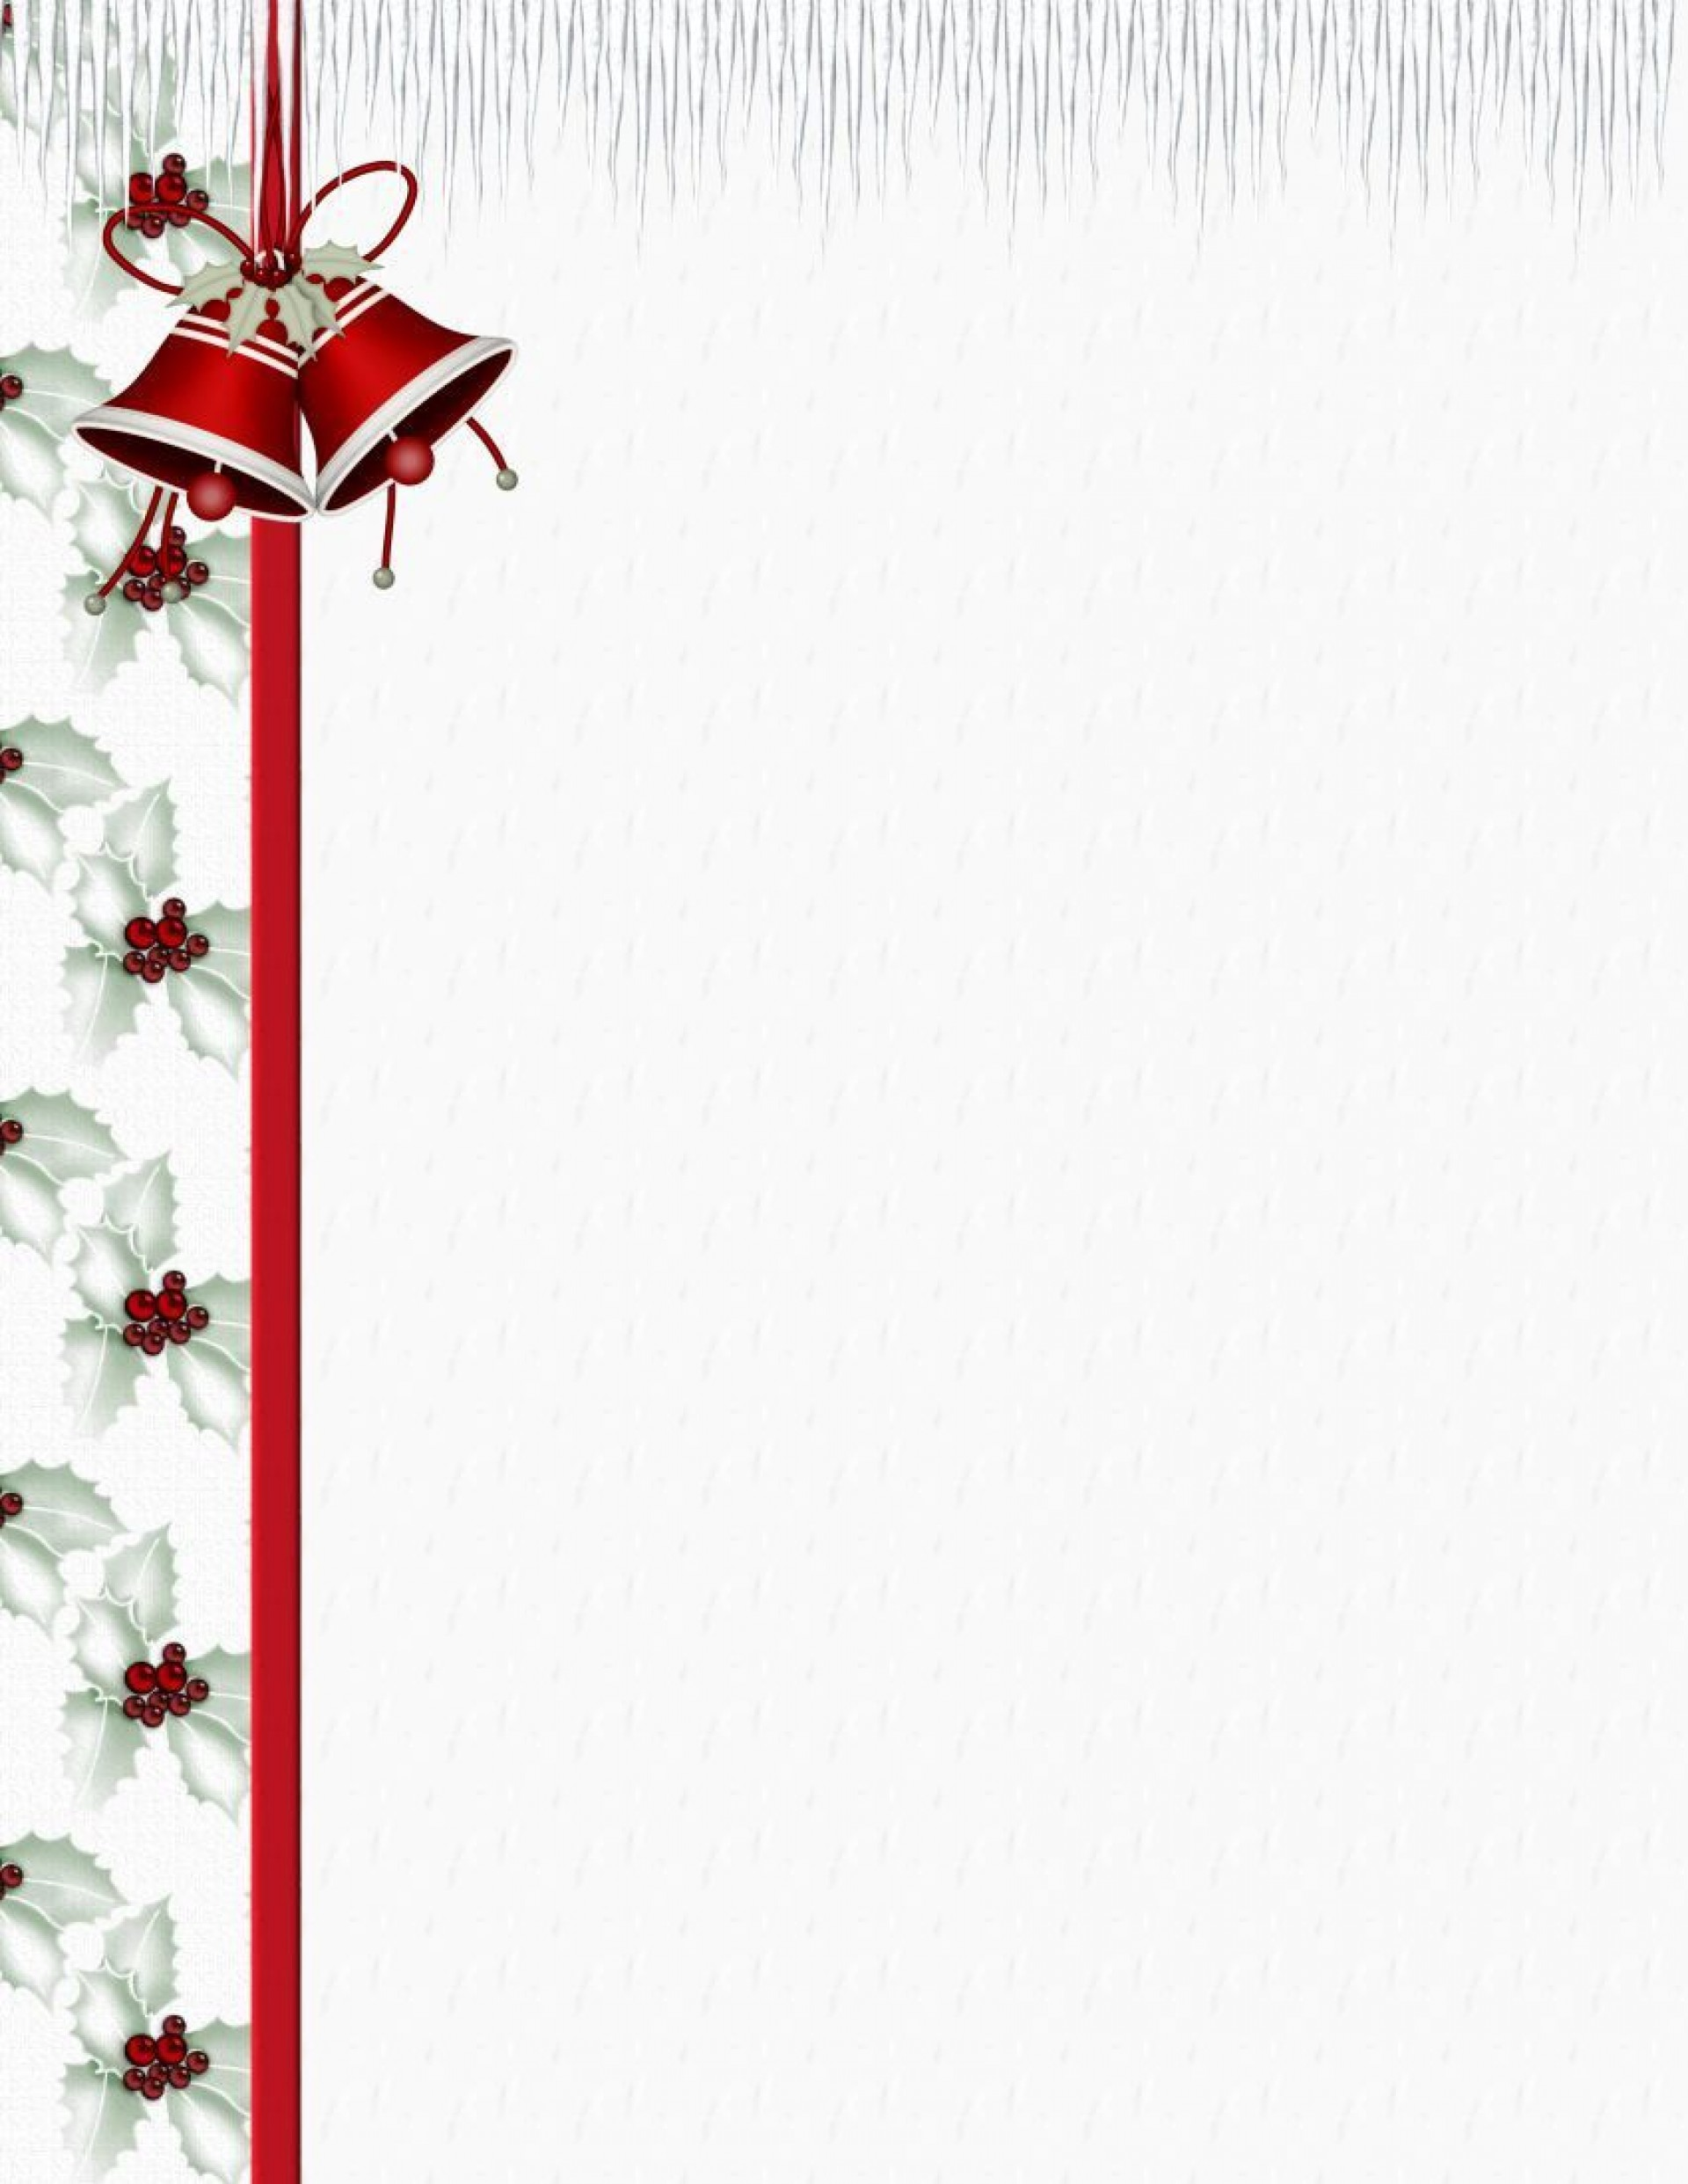 000 Beautiful Christma Stationery Template Word Free Picture  Religiou For Downloadable1920